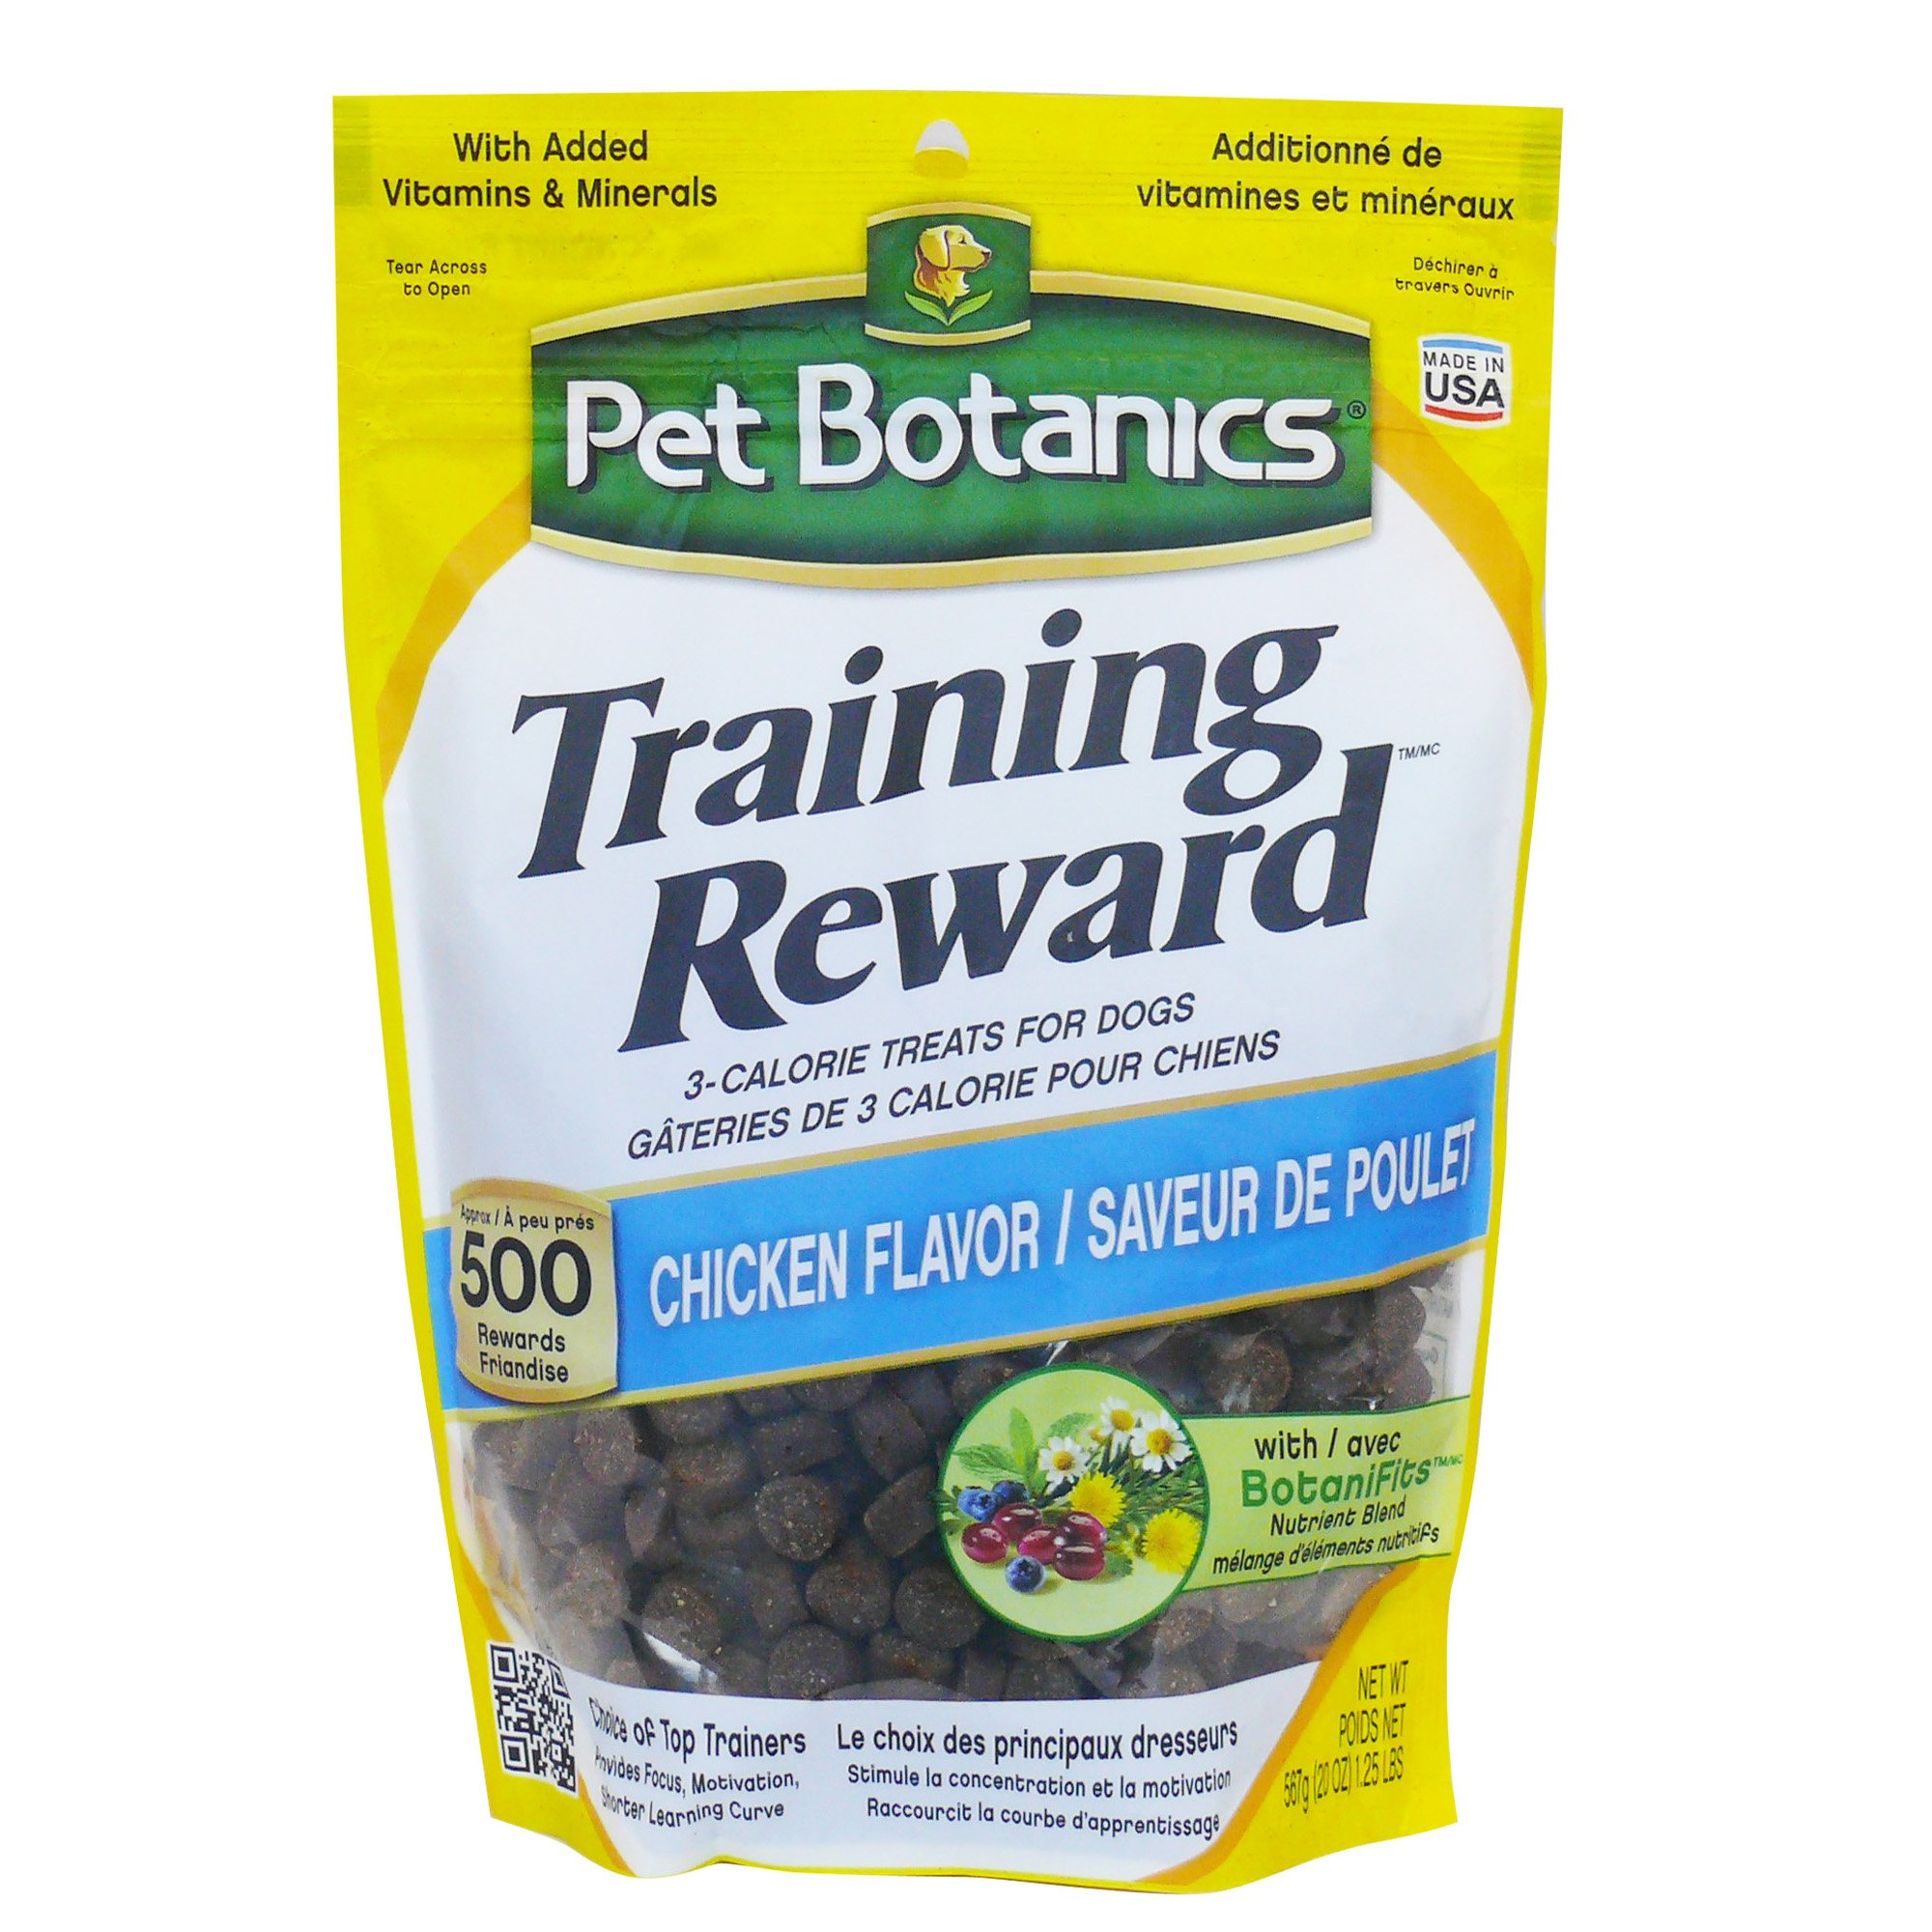 Image of Pet Botanics Training Reward Chicken Flavor Dog Treats, 20 oz. bag, 500 count